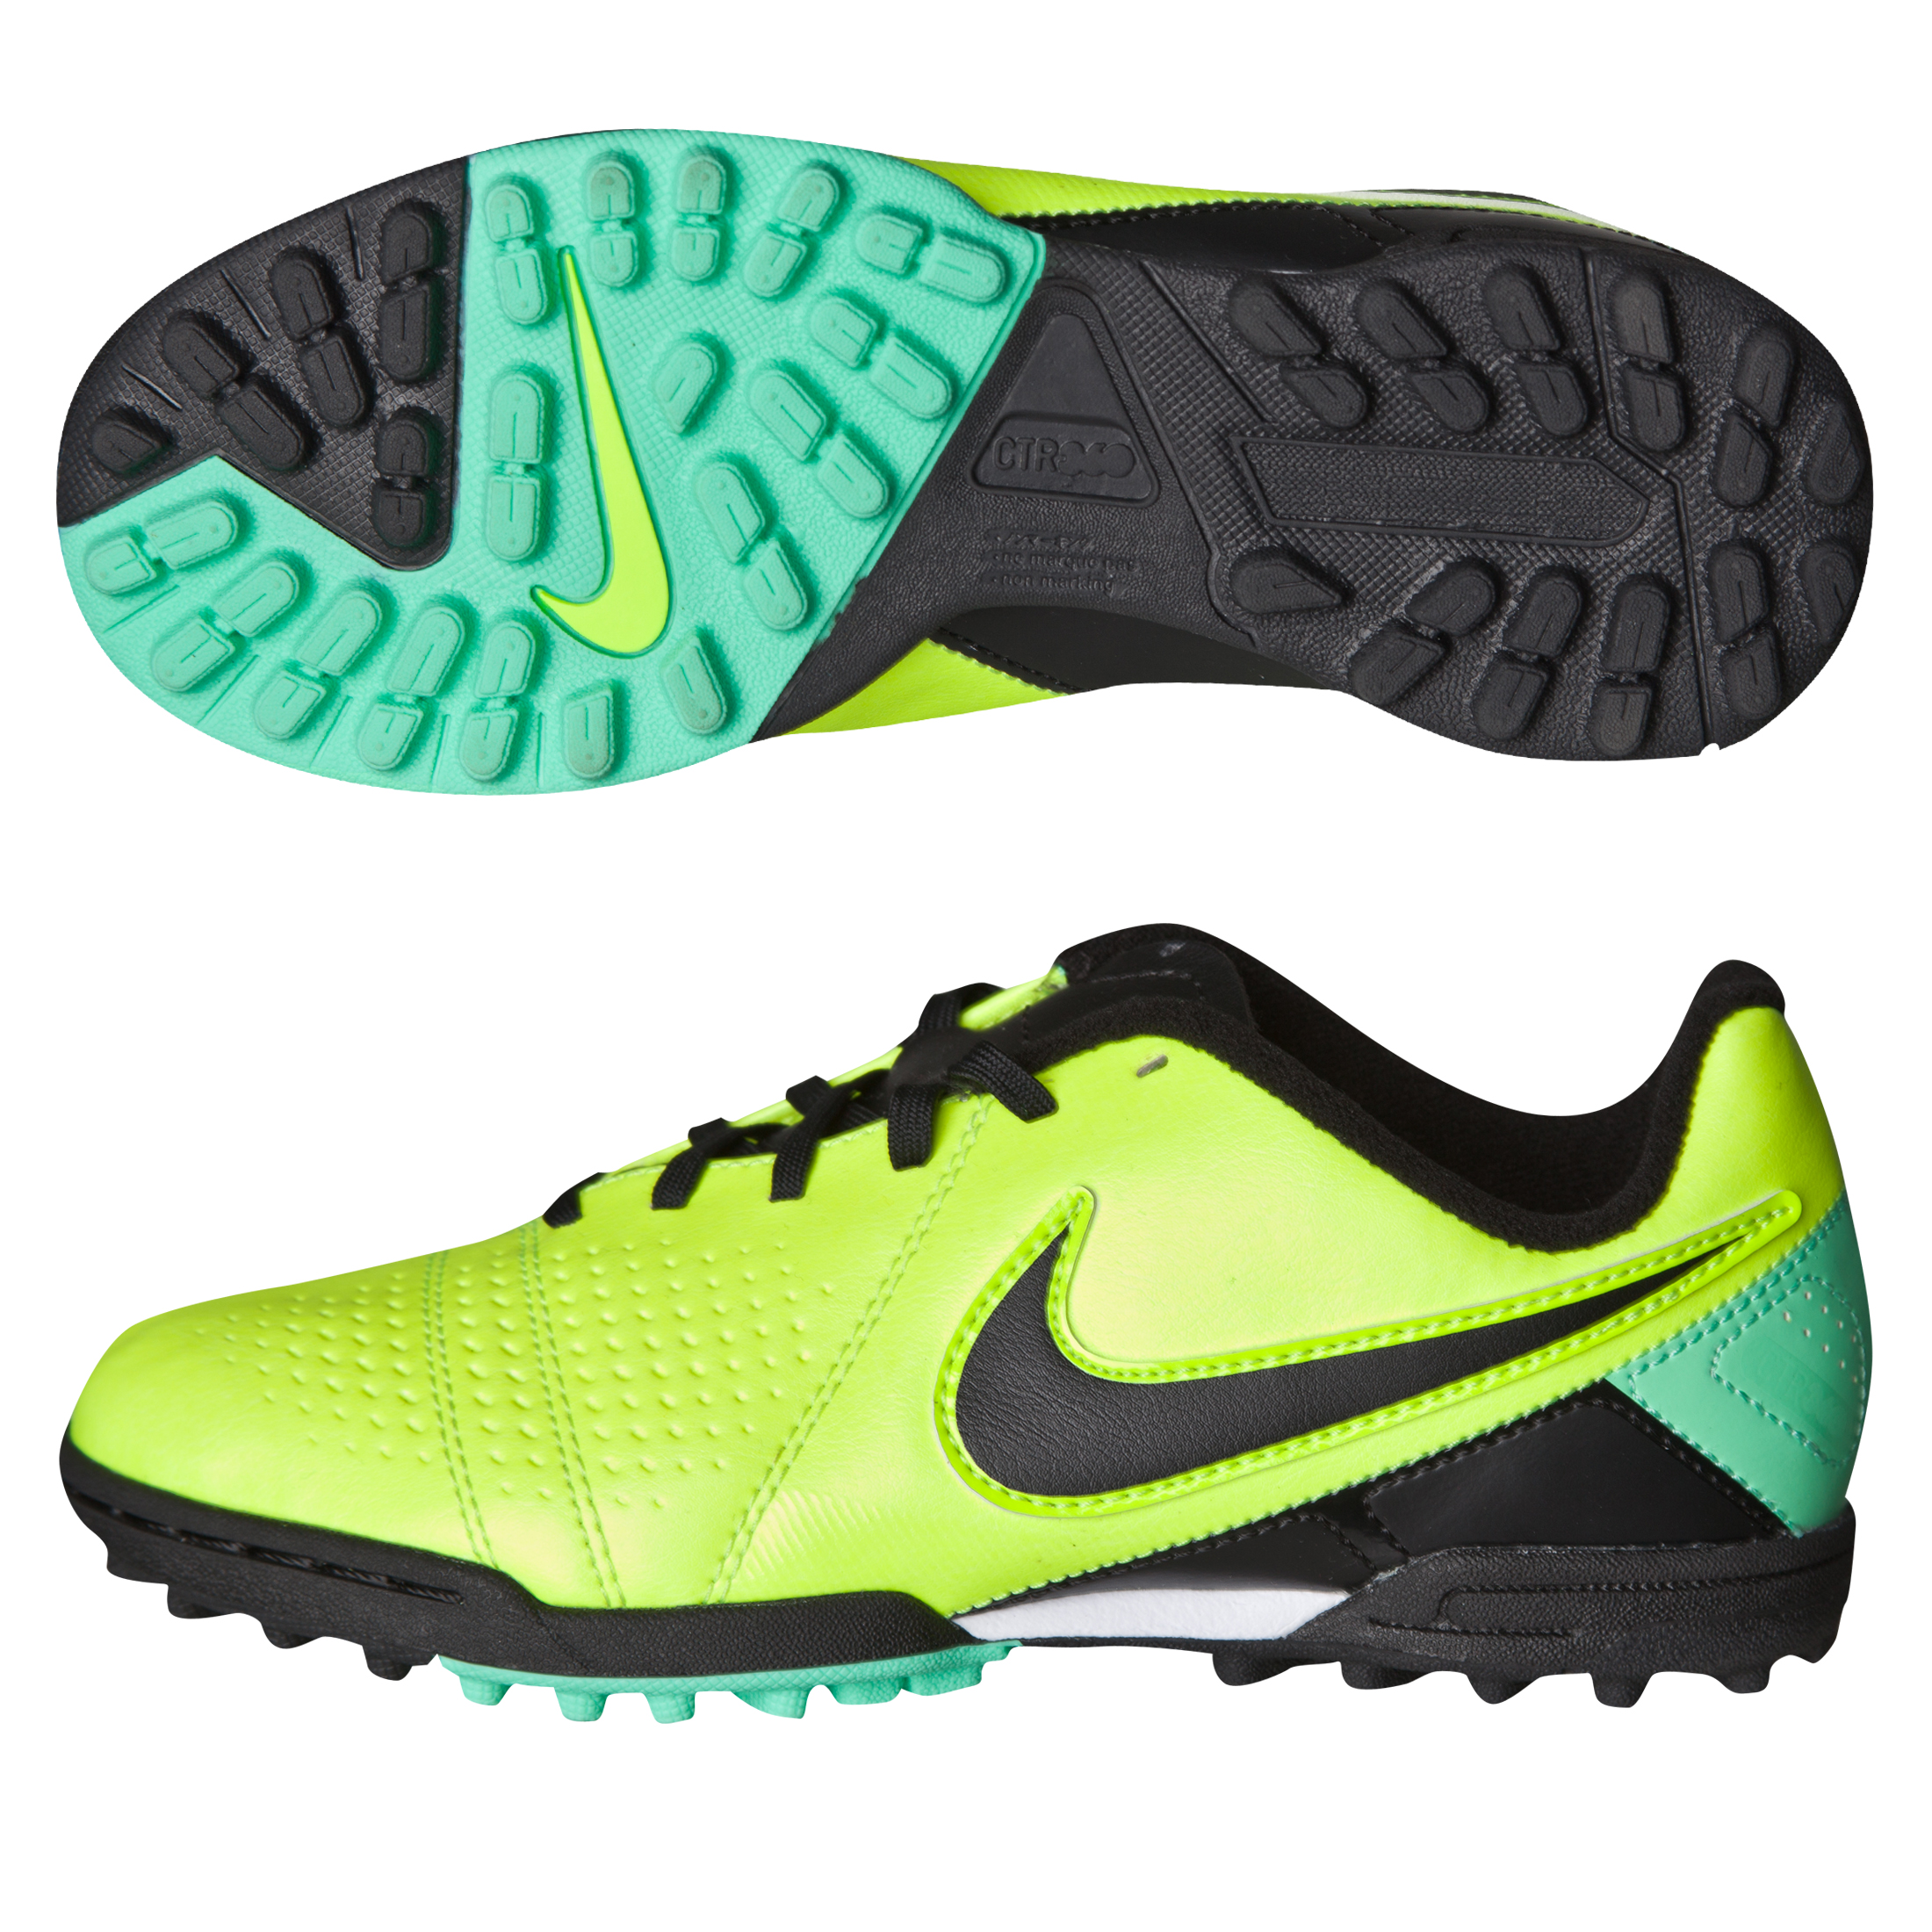 Nike CTR360 Libretto III Astroturf Trainers - Kids Yellow